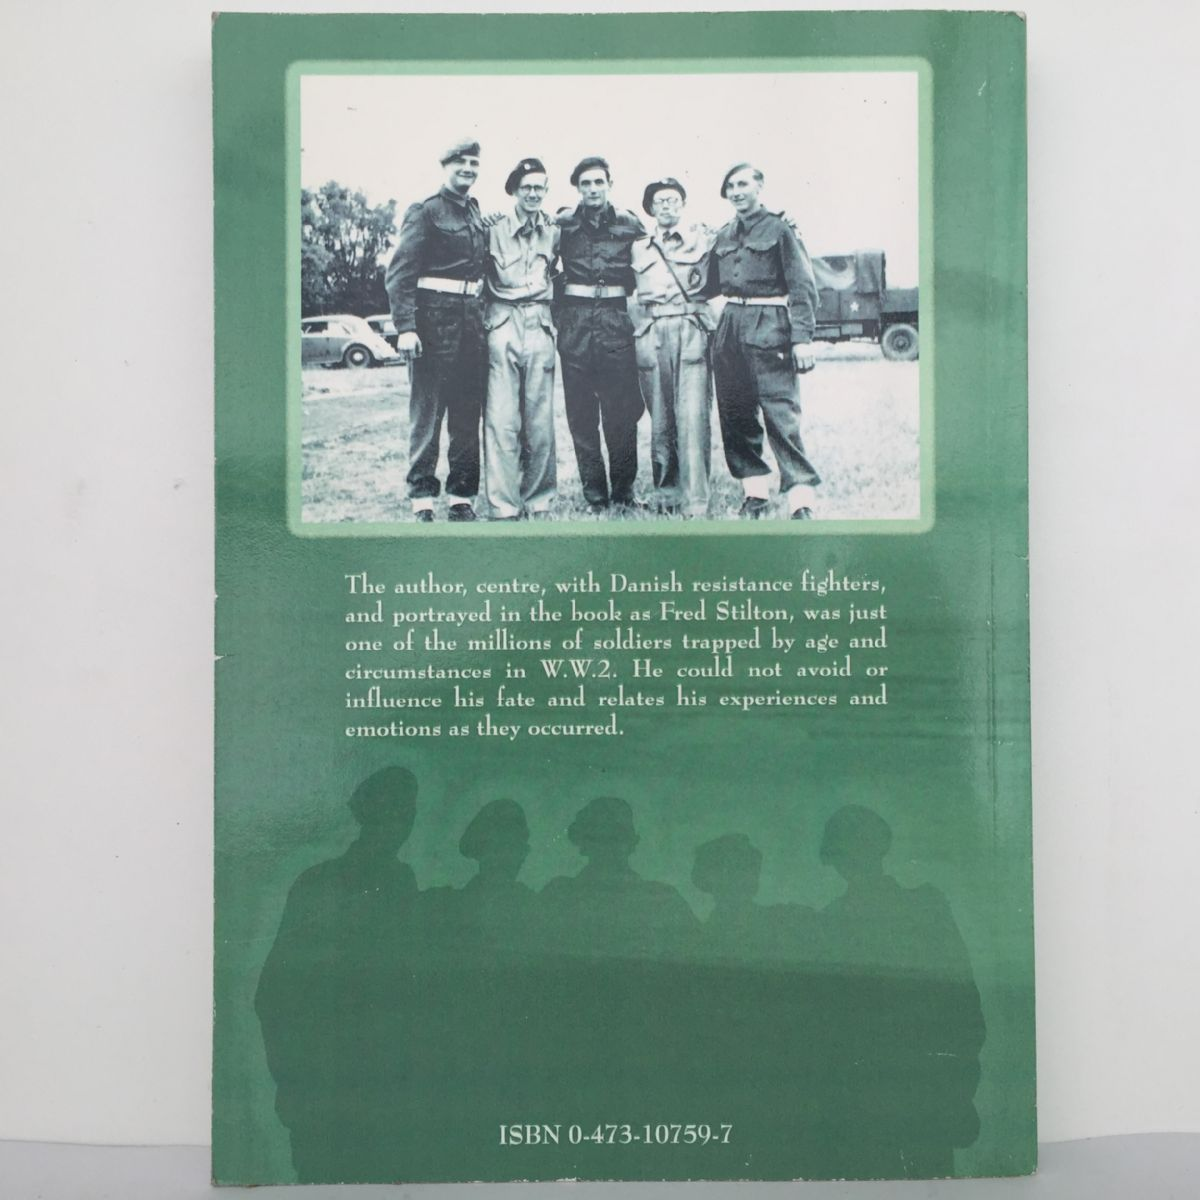 Follow On: Poignant Years of a Conscript 1941-1946